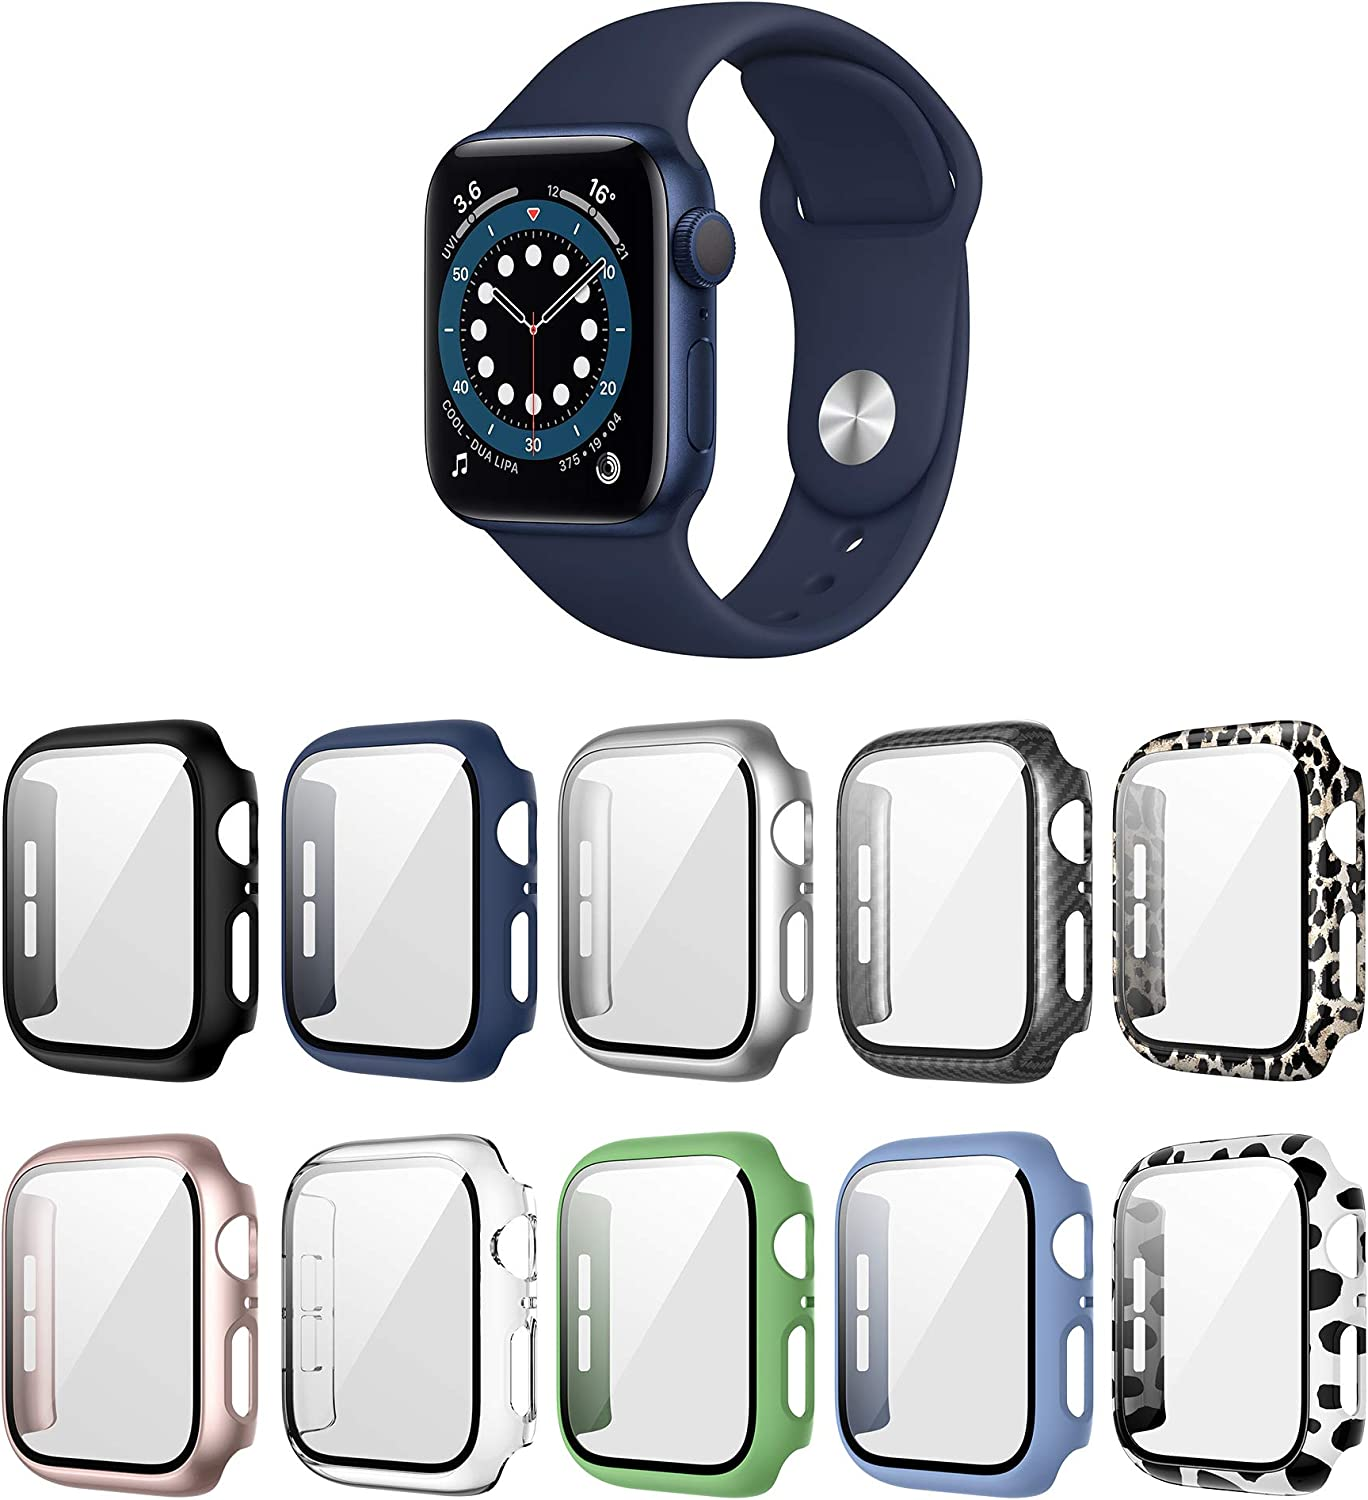 Landhoo 10 Pack case for Apple Watch Series 3 Series 2 38mm Screen Protector with Tempered Glass, Hard PC HD Full Cover Protective iwatch.